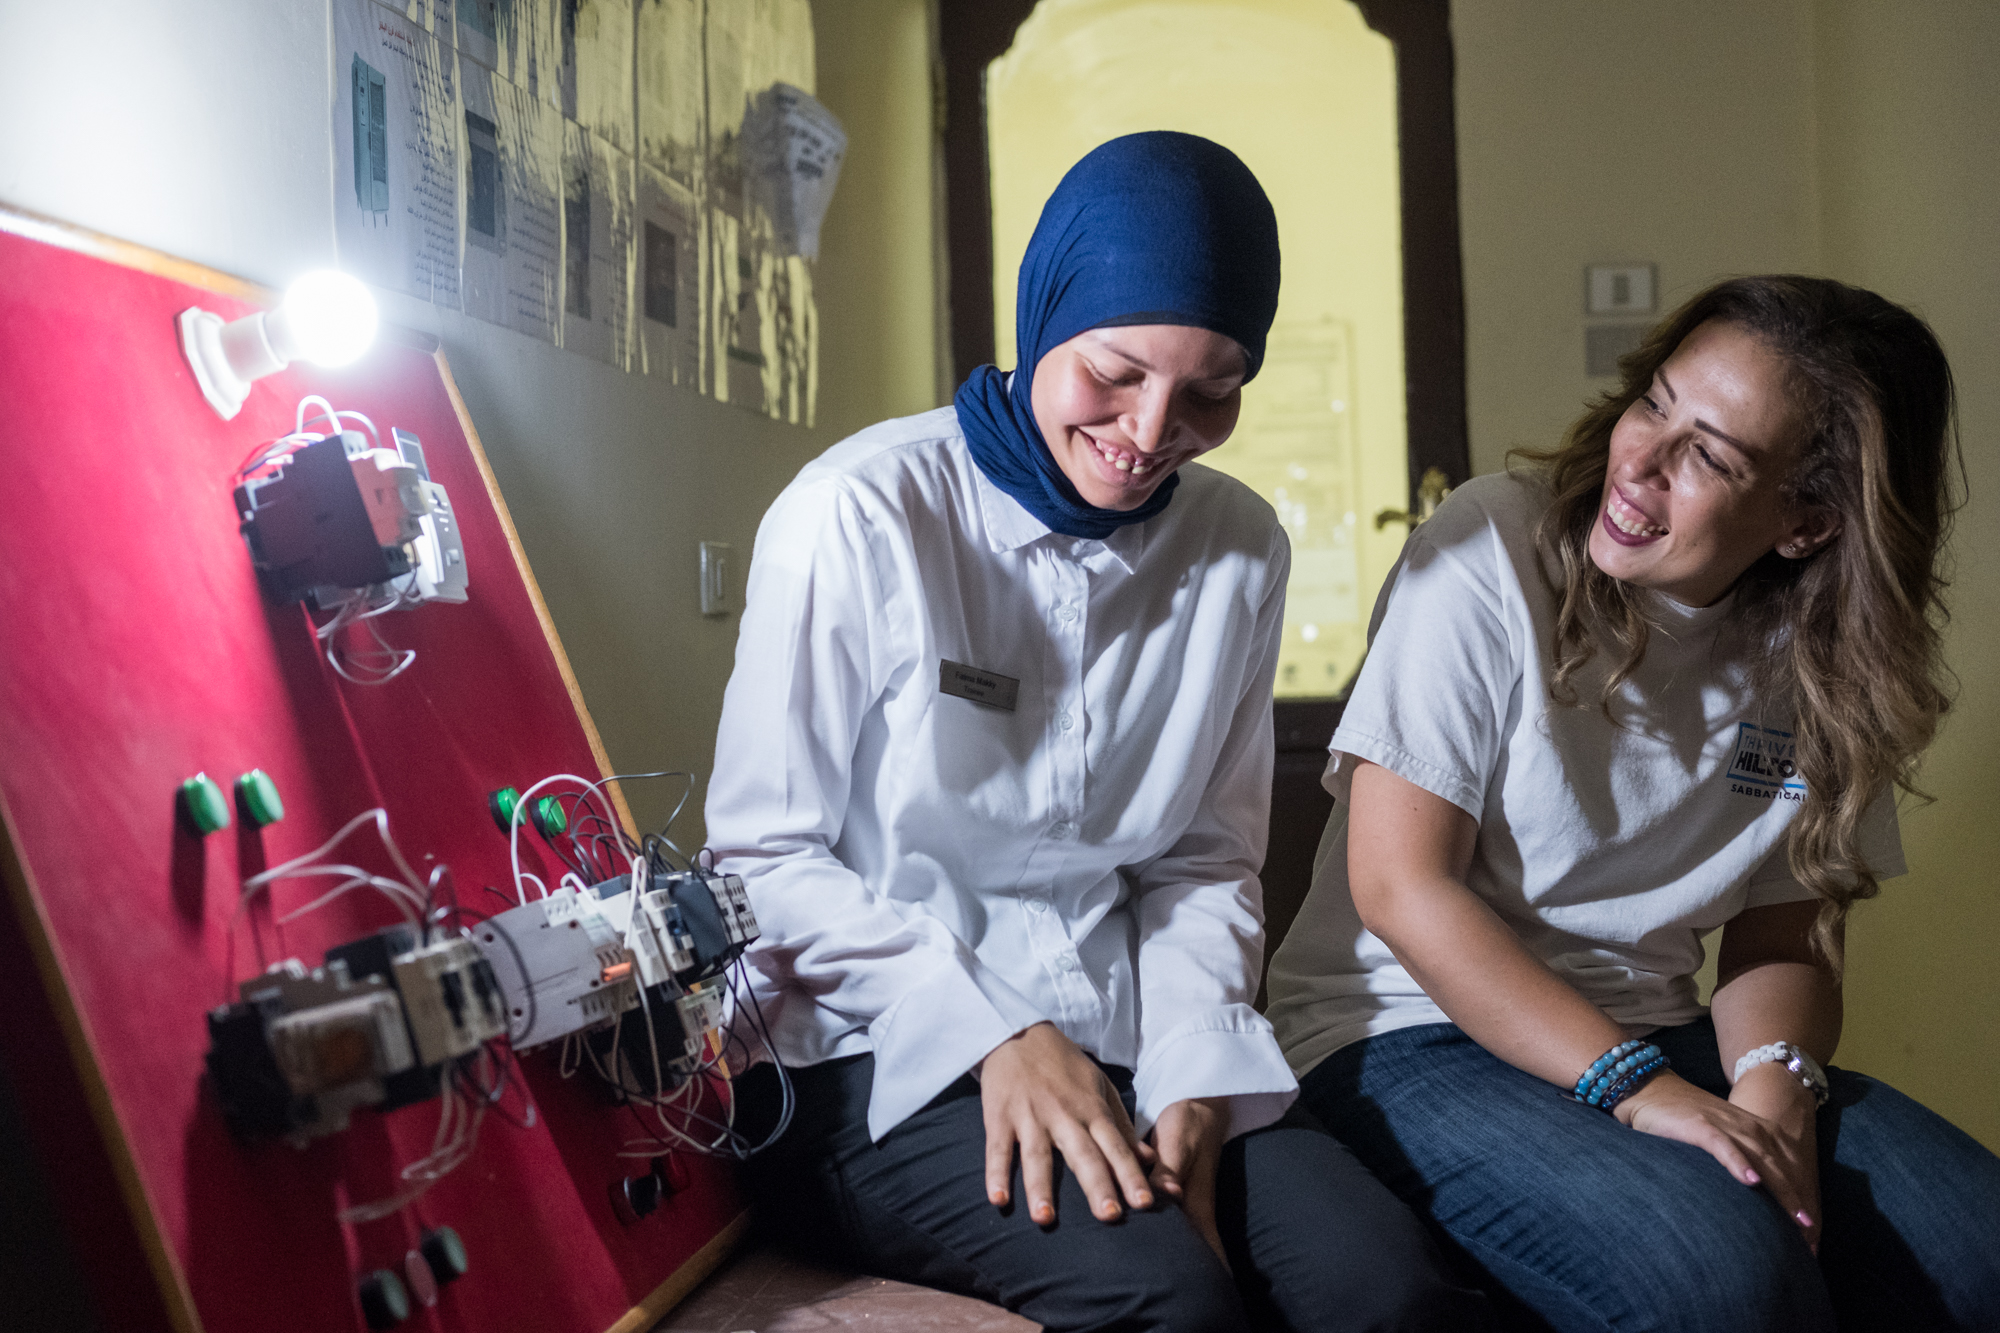 Ingy Helal (right) poses for a portrait with Fatma (left), a trainee in the Engineering/Electrical Department at Hilton Sharm Waterfalls Resort in Sharm El Sheikh, Egypt. Ingy's training program brought young adults from Upper Egypt into the tourism and hospitality industry.